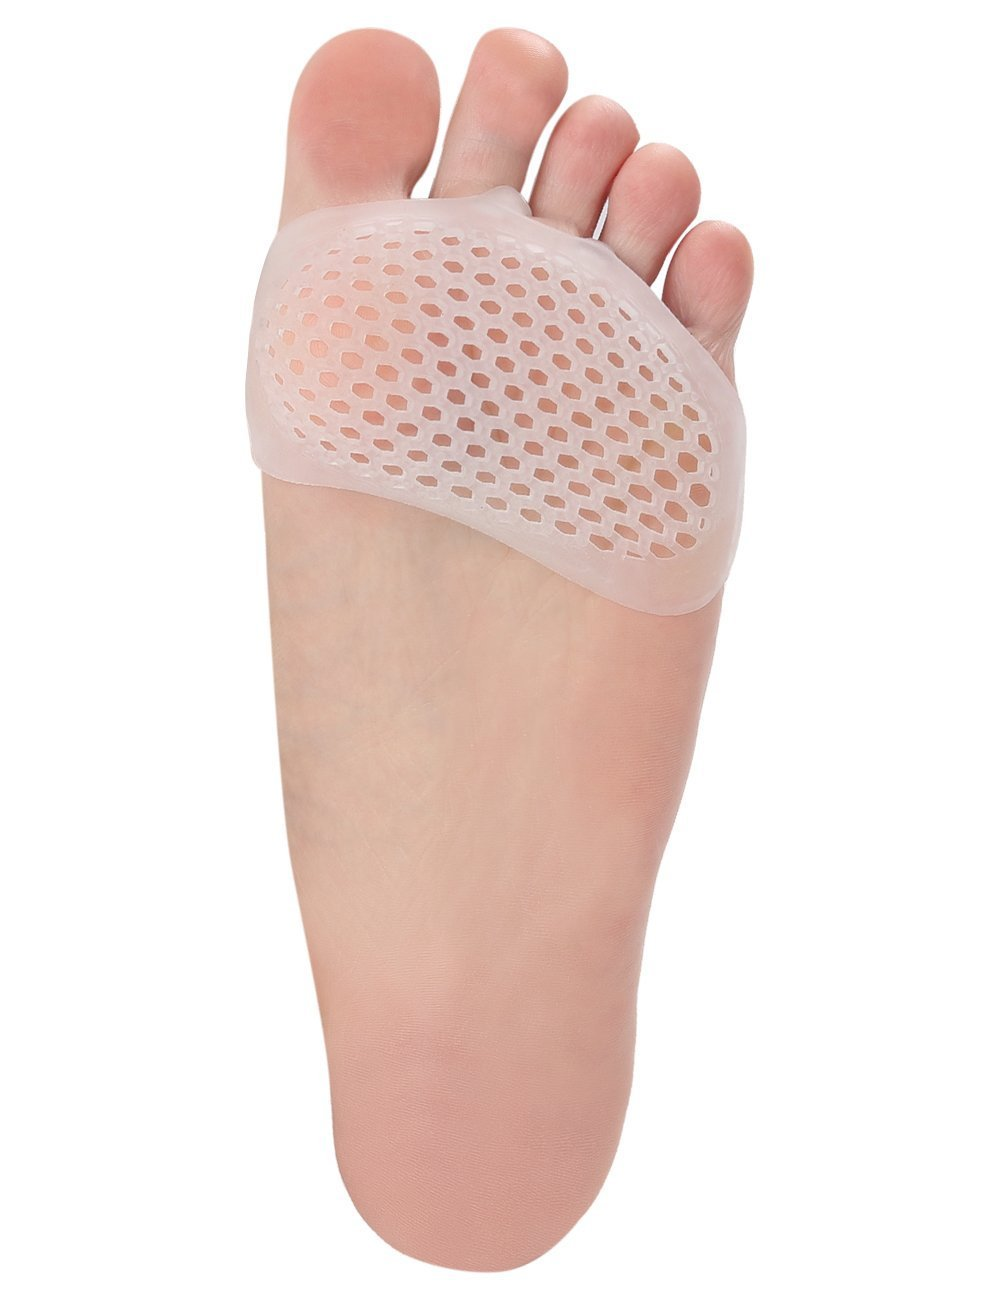 Gel Metatarsal Cushion Toe Separators - Forefoot Pad for Mortons Neuroma- Rapid Foot Pain Relief